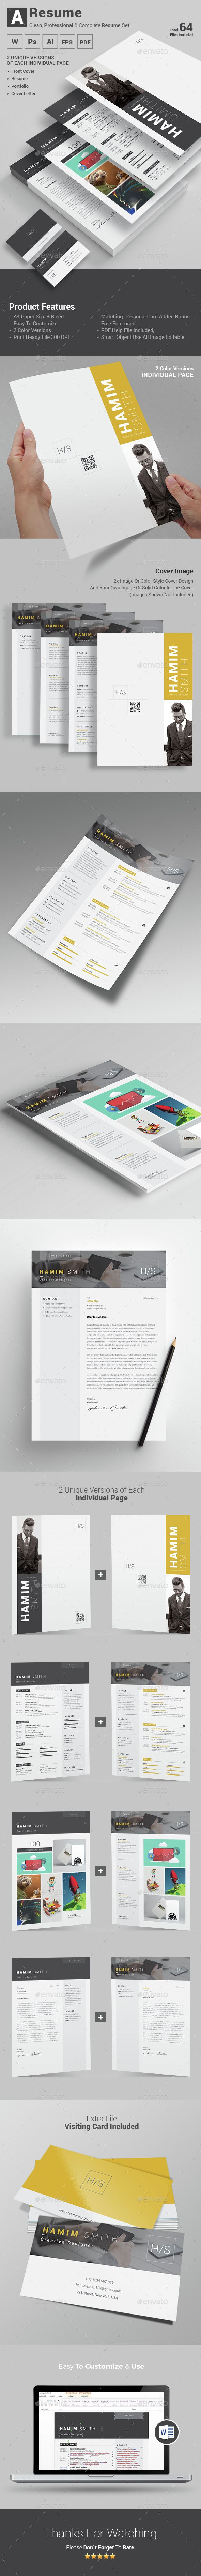 Cv Templates Pdf%0A   Styles Resume Template with multiple variations  Color versions    pages resume  template with